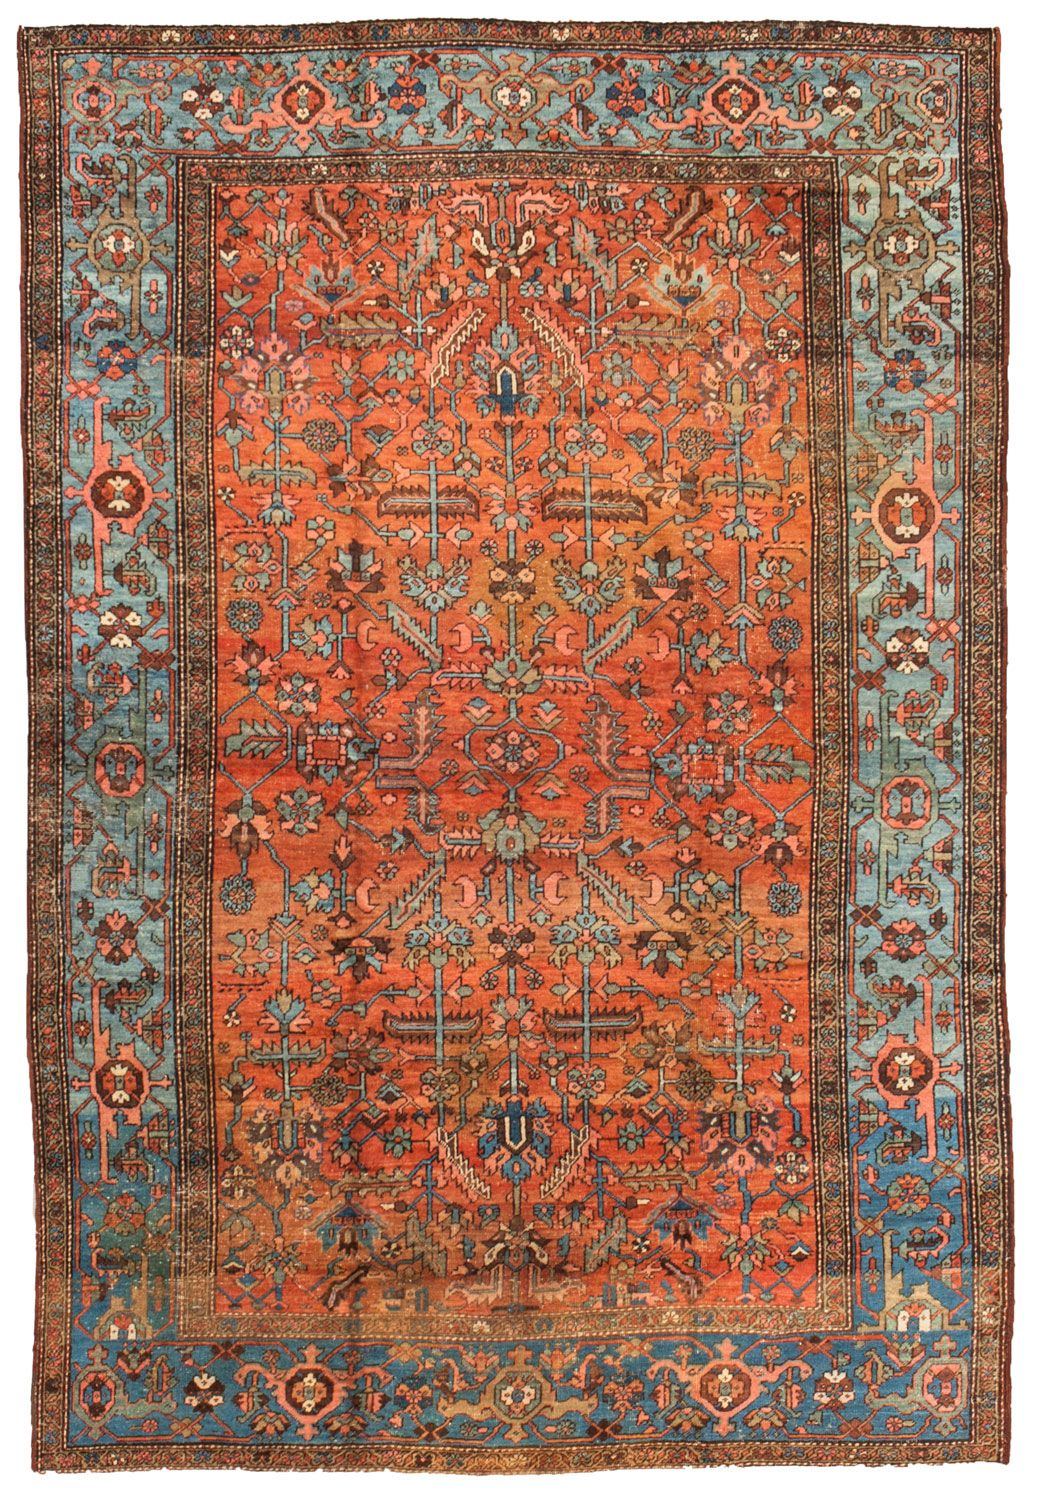 Heriz Persian Rugs Home Interiors And Gifts Craftsman Home Interiors Home Decor Paintings